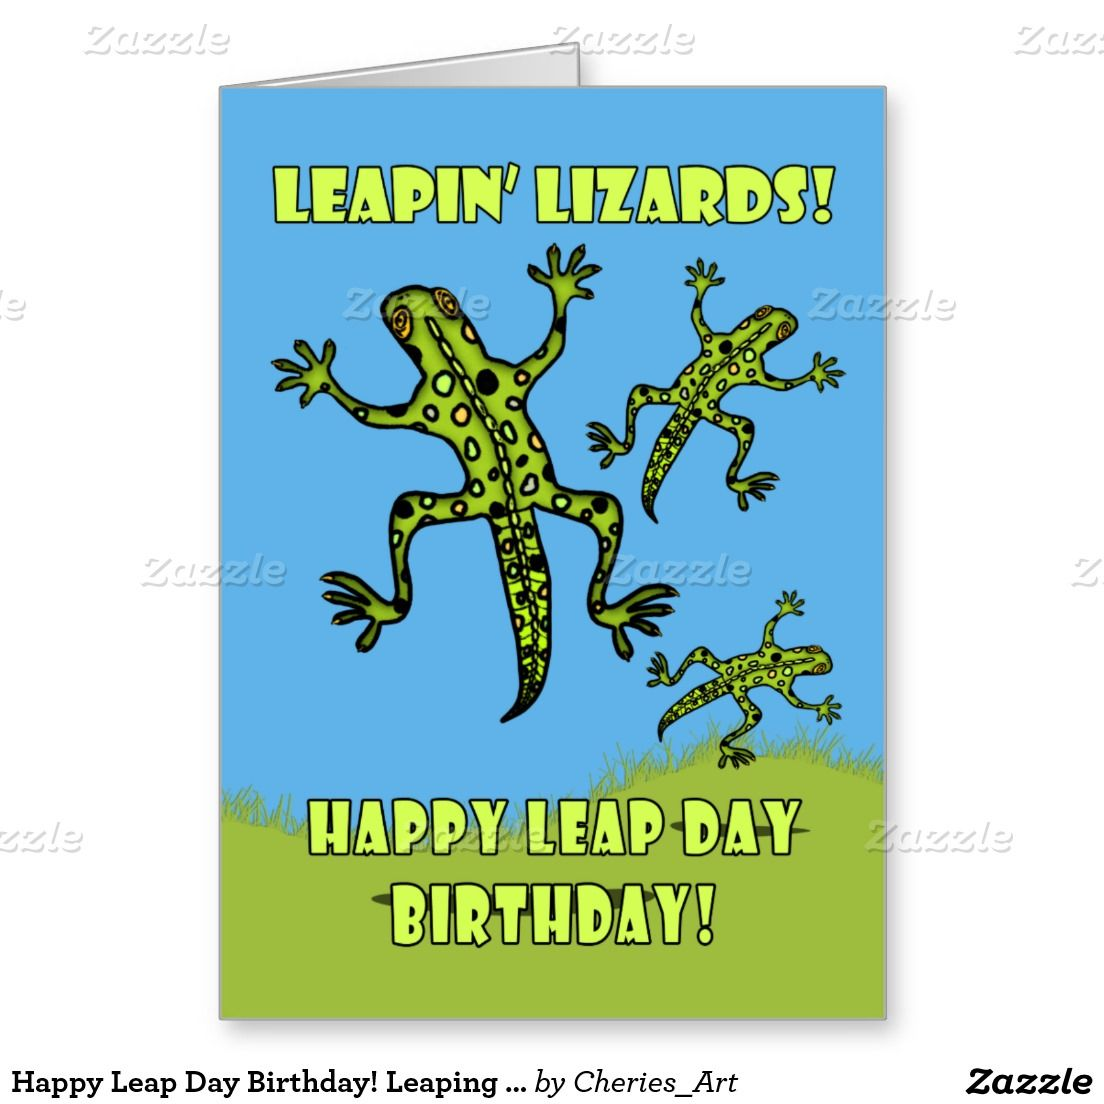 Happy Leap Day Birthday Leaping Lizards Card Lizards And Birthdays